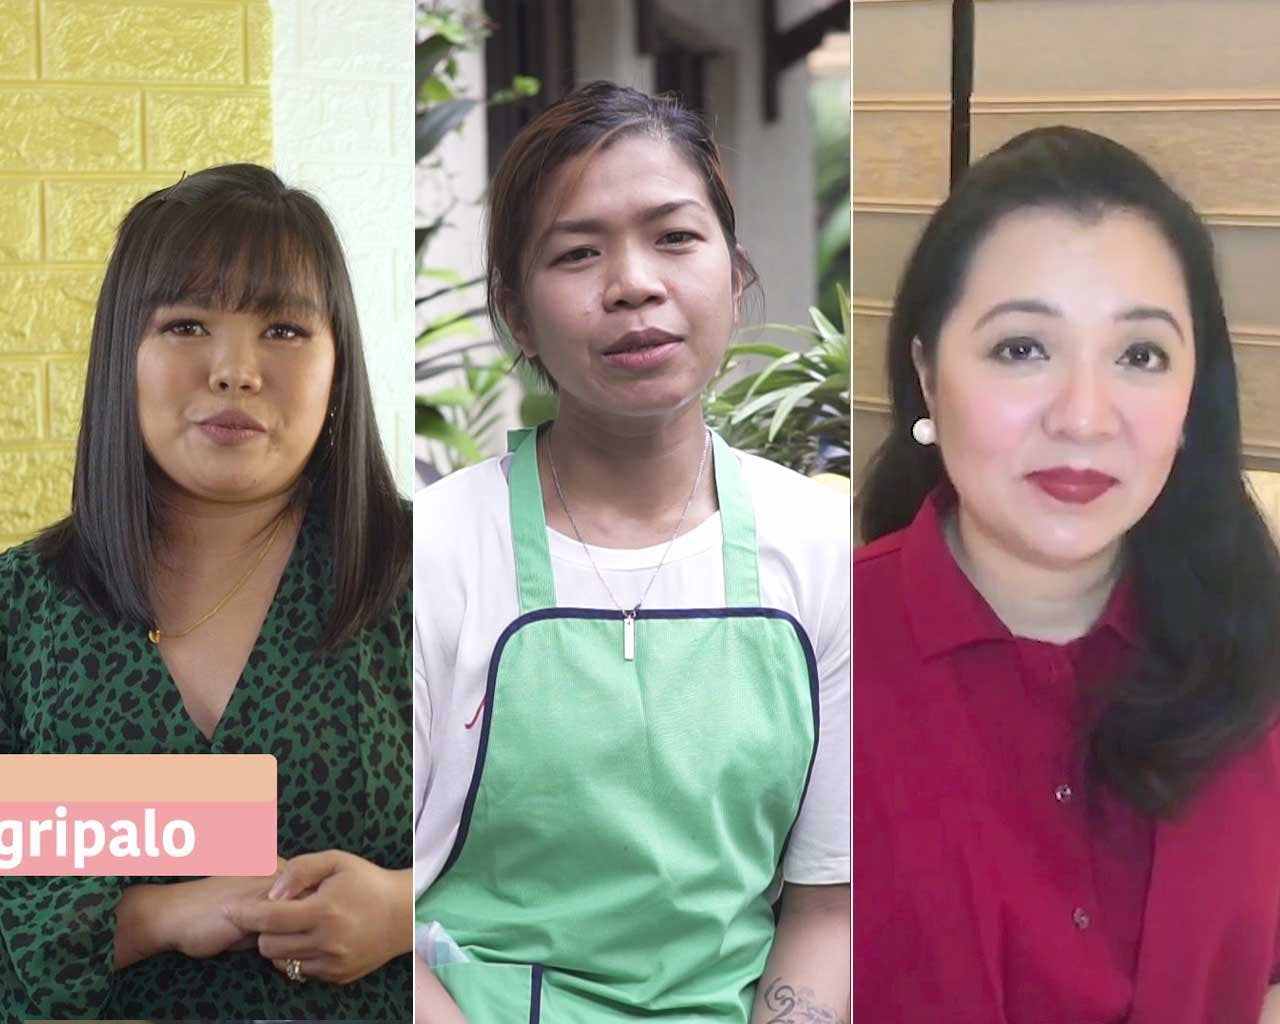 Mommy Madiskarte: How 3 Women Successfully Built Their Online Businesses During The Lockdown